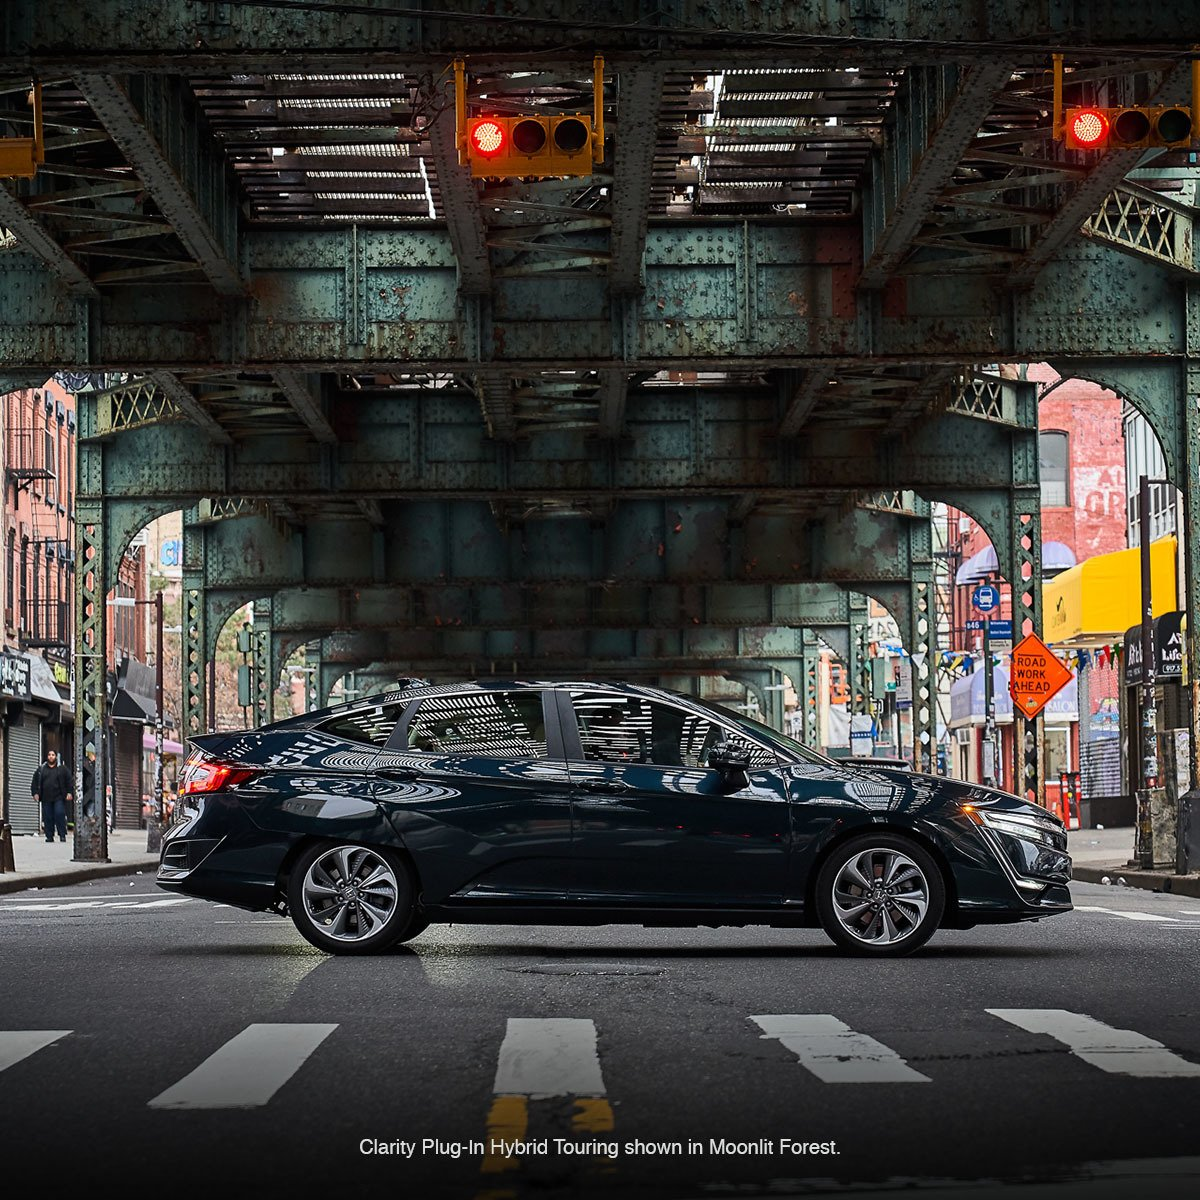 With fewer stops at the gas station, use the extra time to explore your city with the #HondaClarity Plug-In Hybrid.